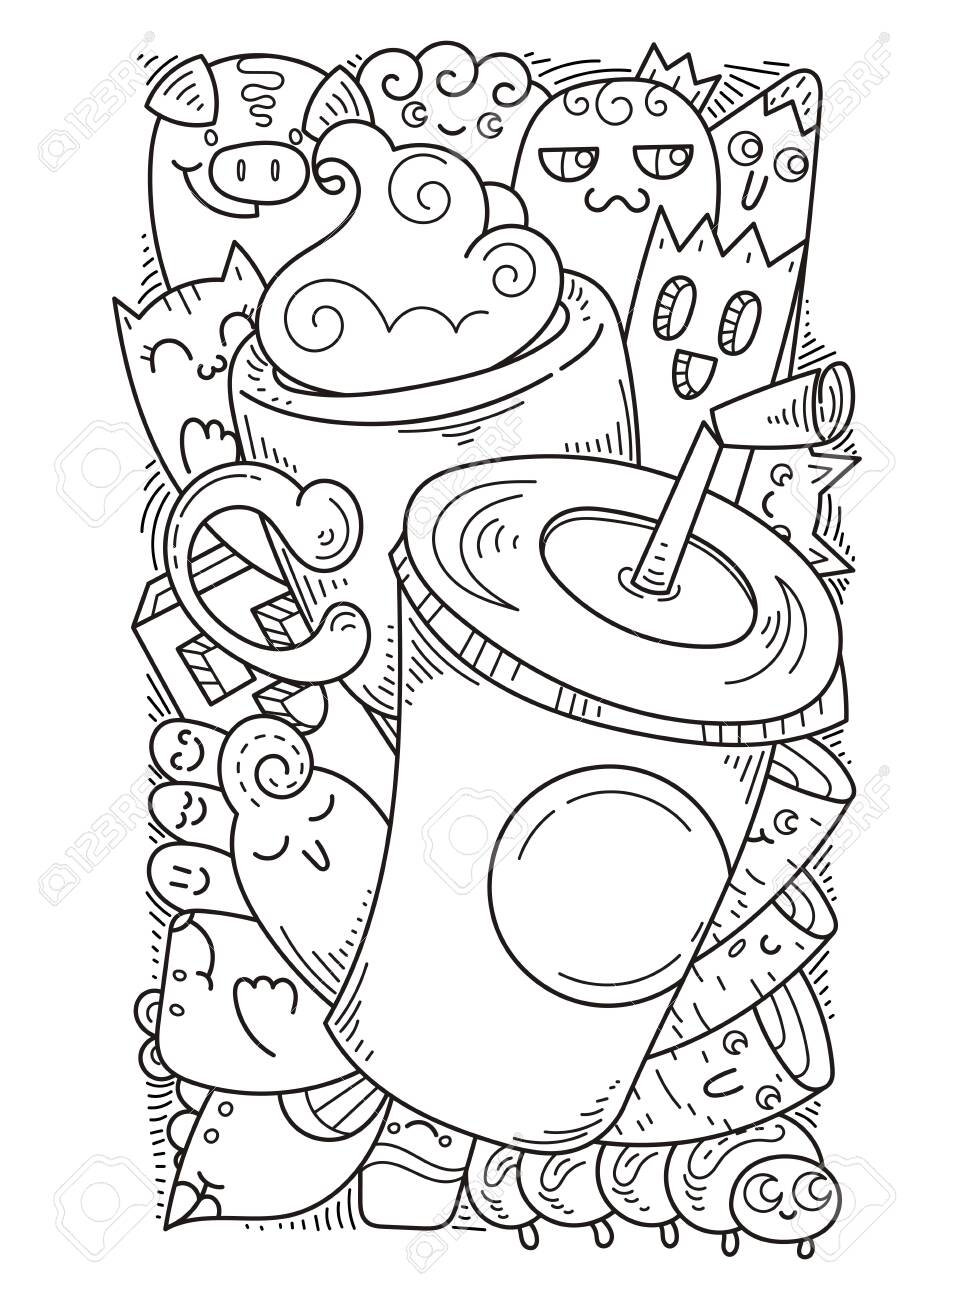 Doodle Hand Drawn Cartoon With Smiles And Taste Coffee Shop Royalty Free Cliparts Vectors And Stock Illustration Image 124083779